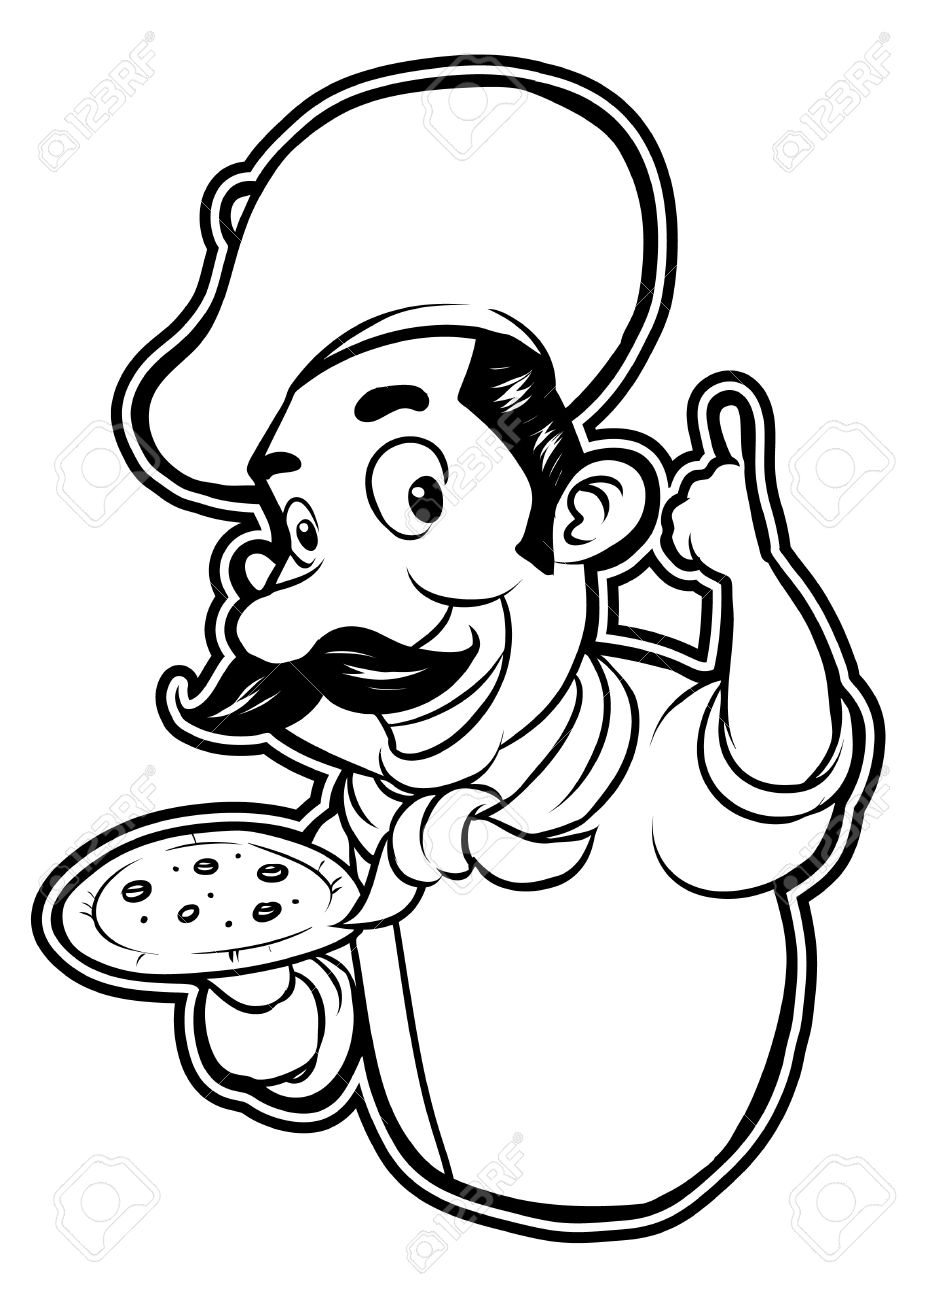 black and white clipart pizza chef royalty free cliparts vectors rh 123rf com pizza clipart black and white free pizza party clipart black and white